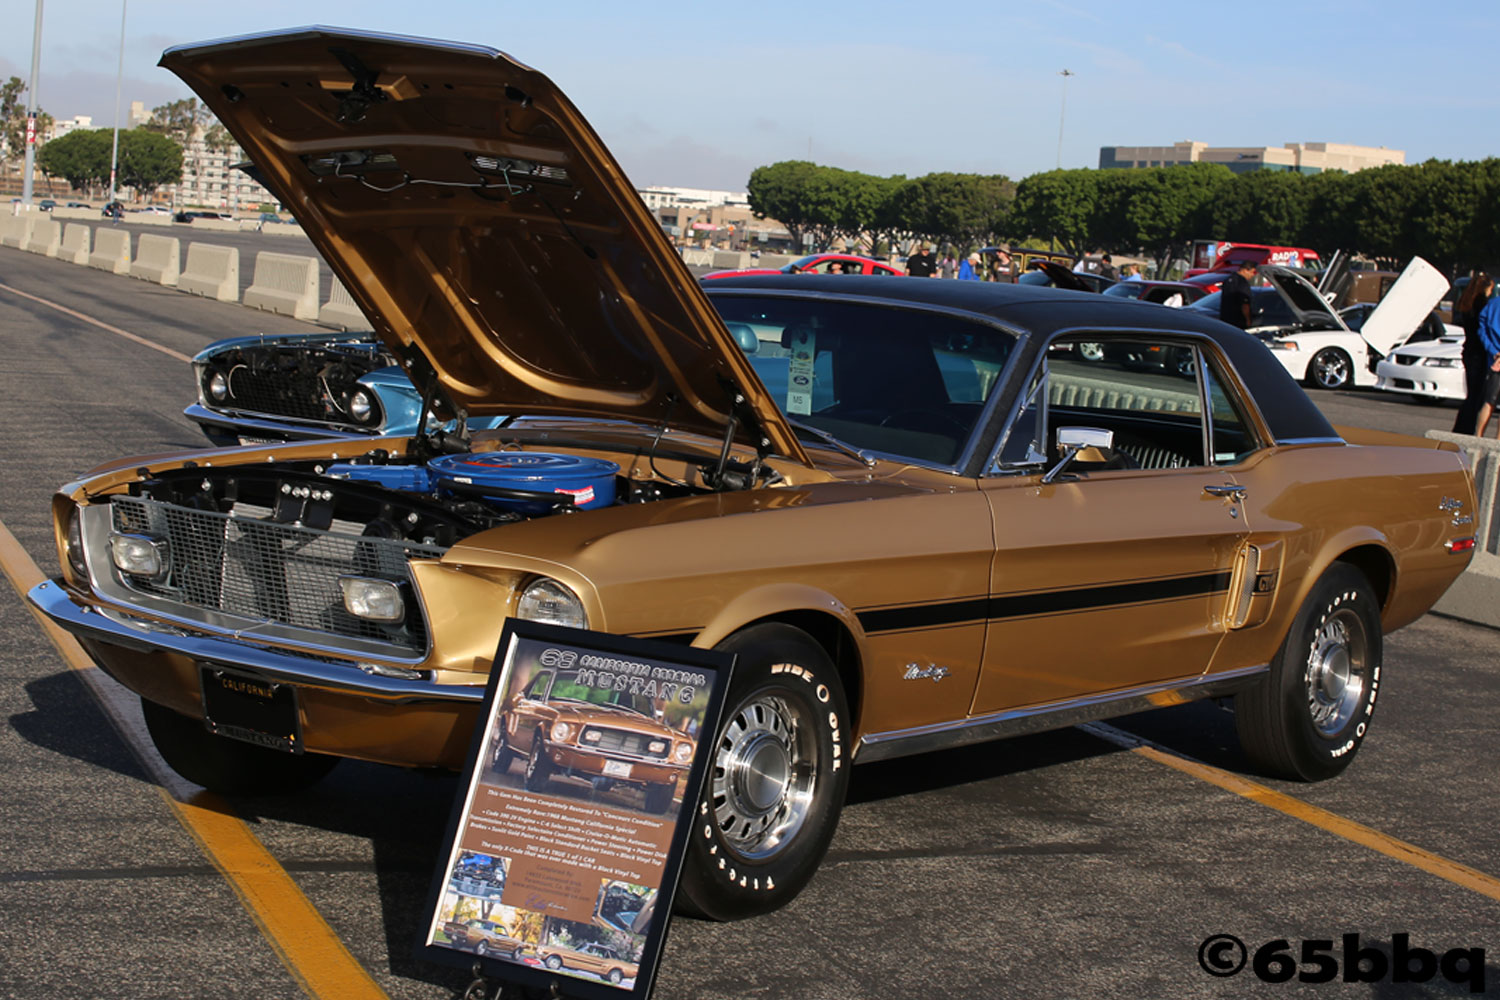 fabulous-fords-forever-april-2019-65bbqmmu-44.jpg